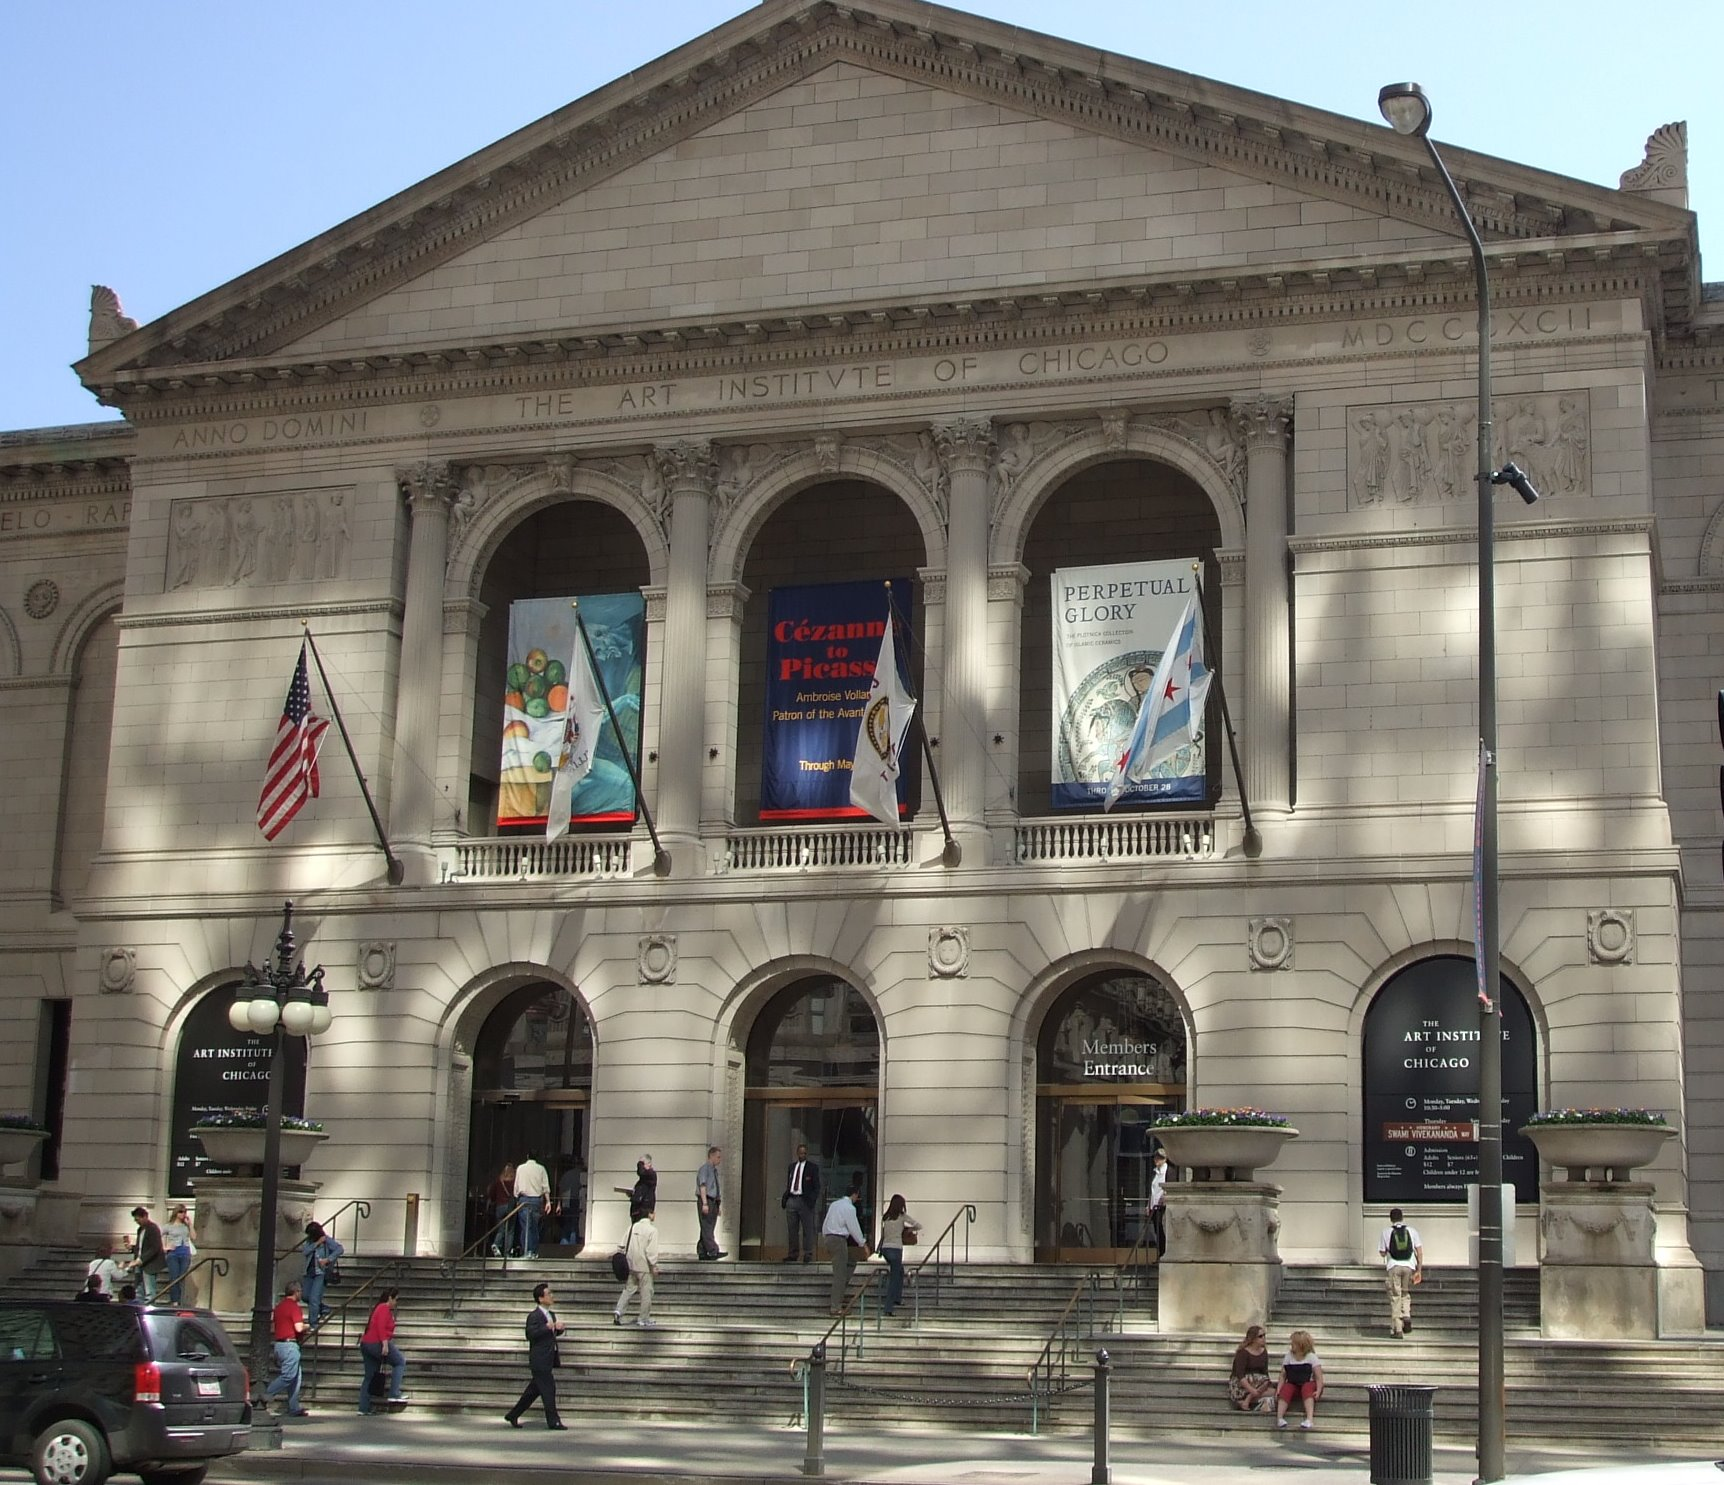 The Art Institute moved into its present location following the conclusion of the Chicago World Fair.